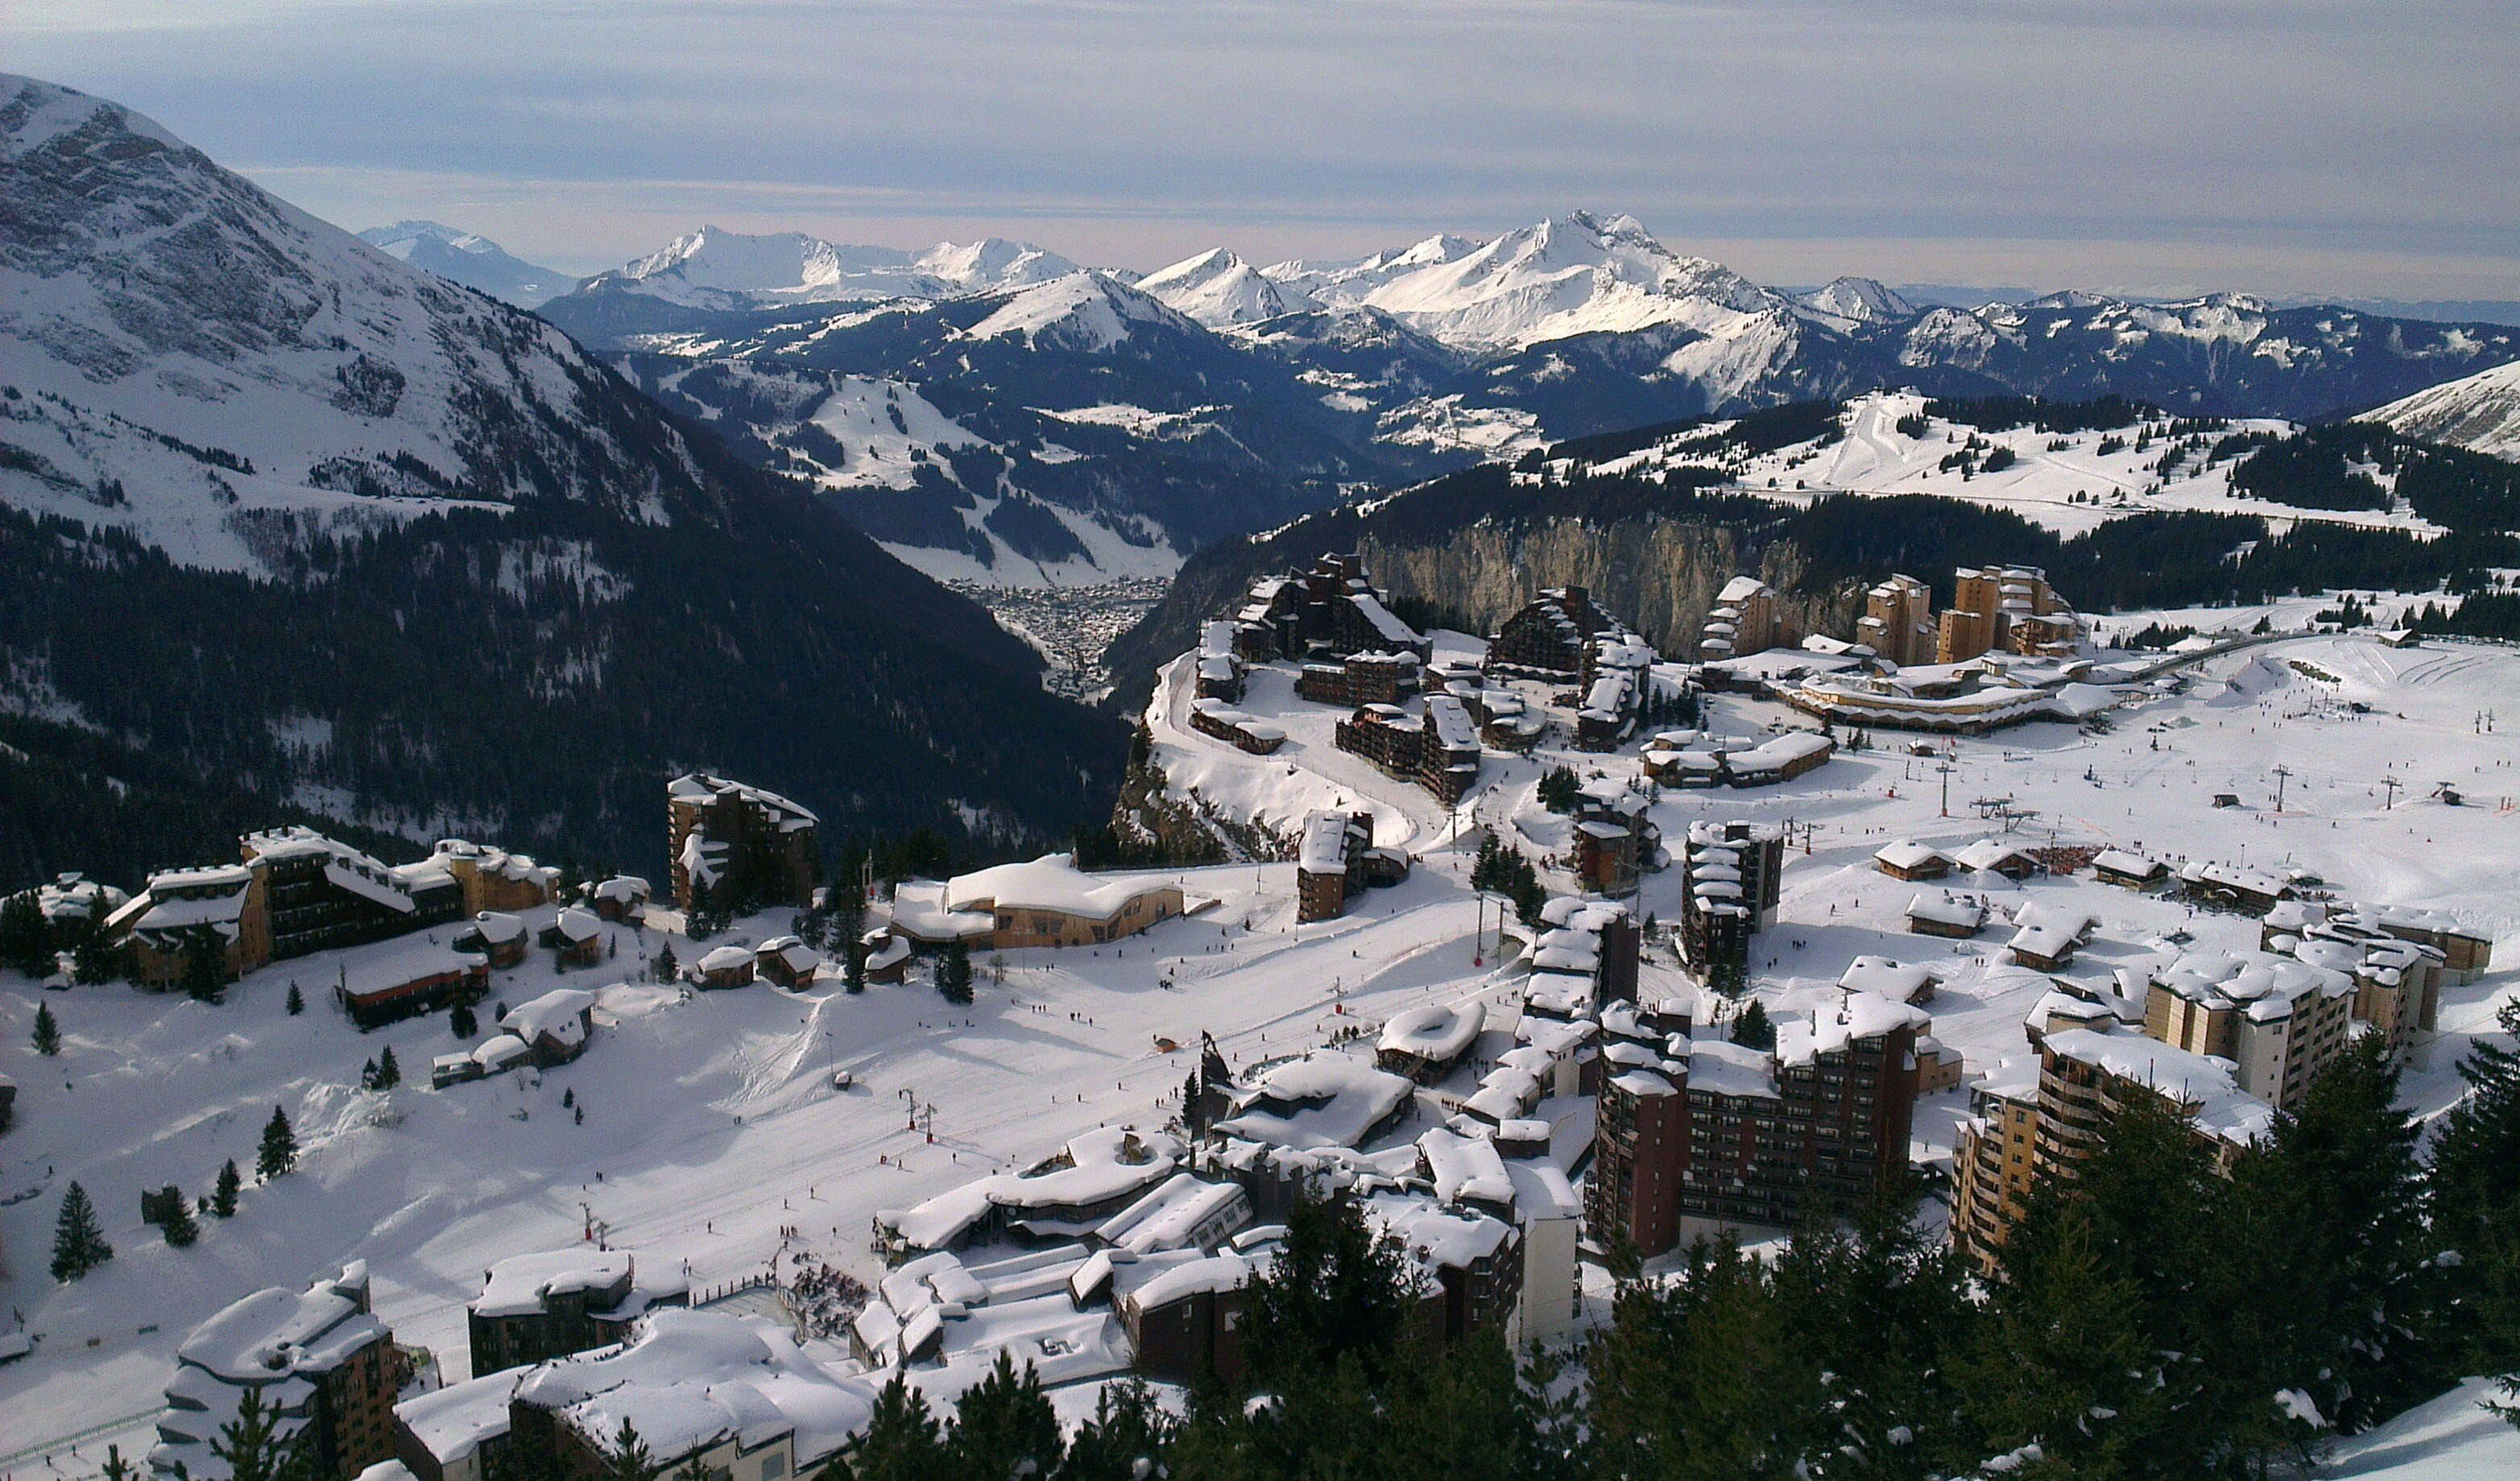 A photo of Avoriaz from above